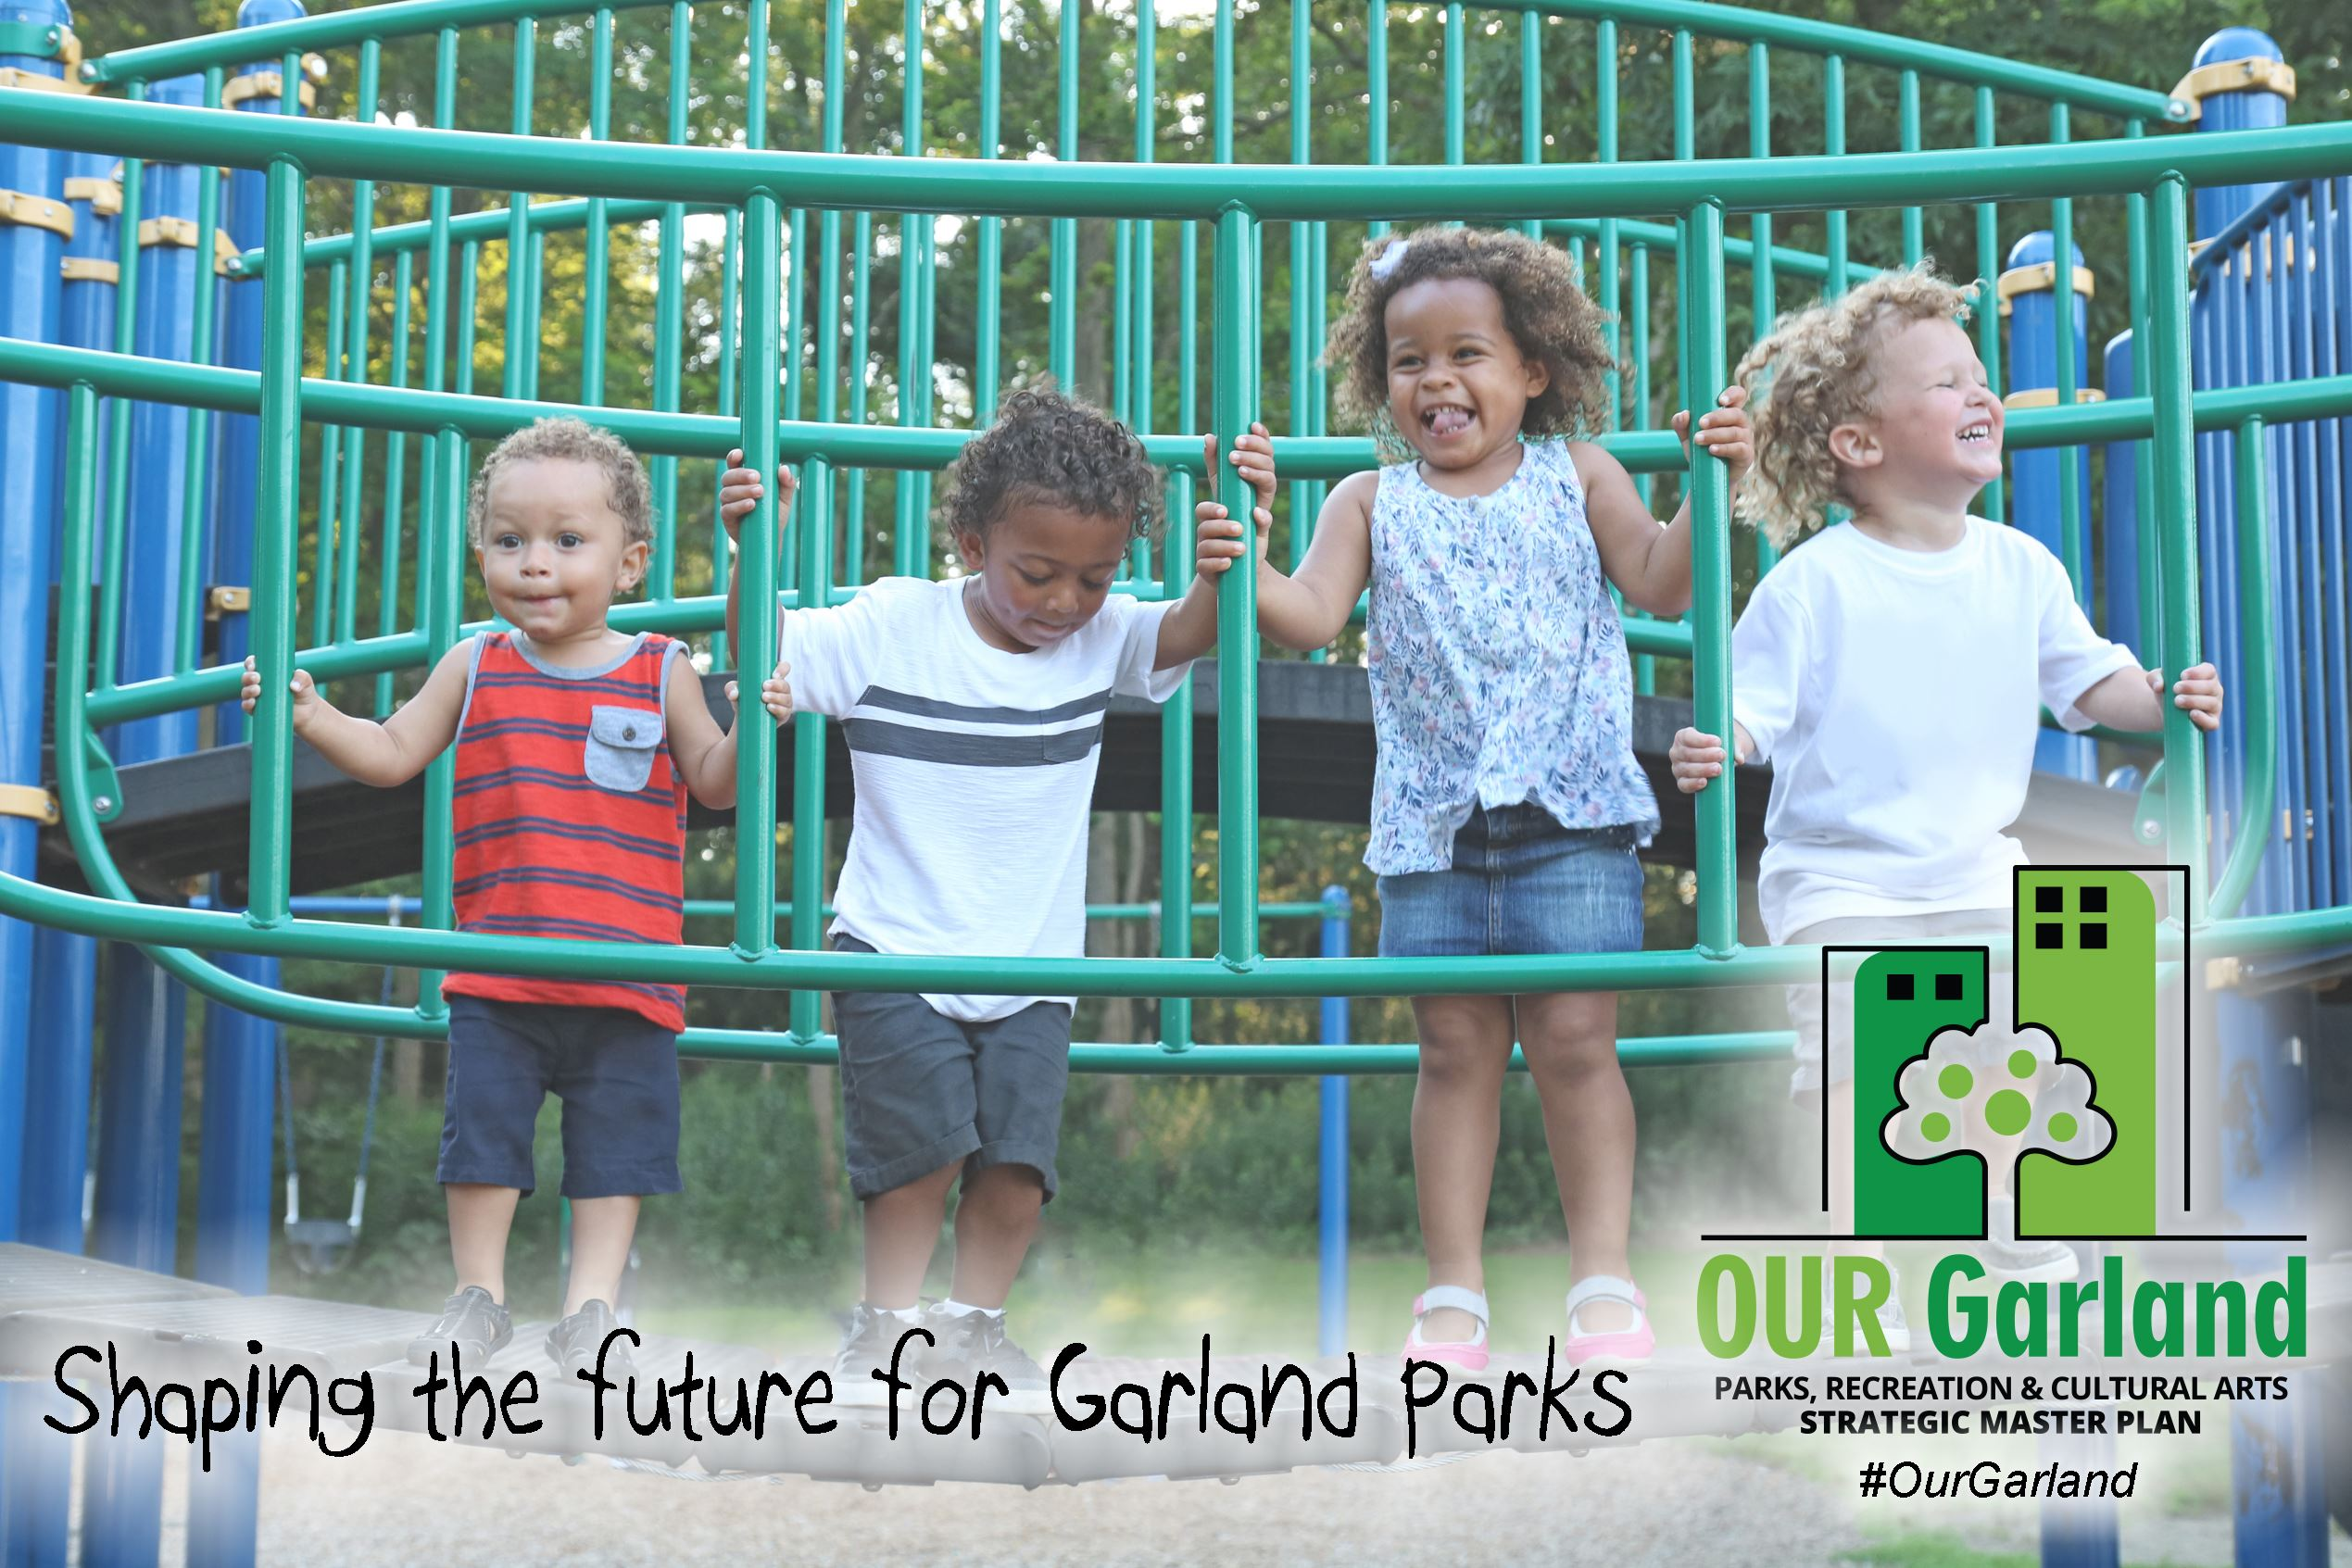 Photo of multiple kids on play structure laughing with text and logo about the Parks Master Plan